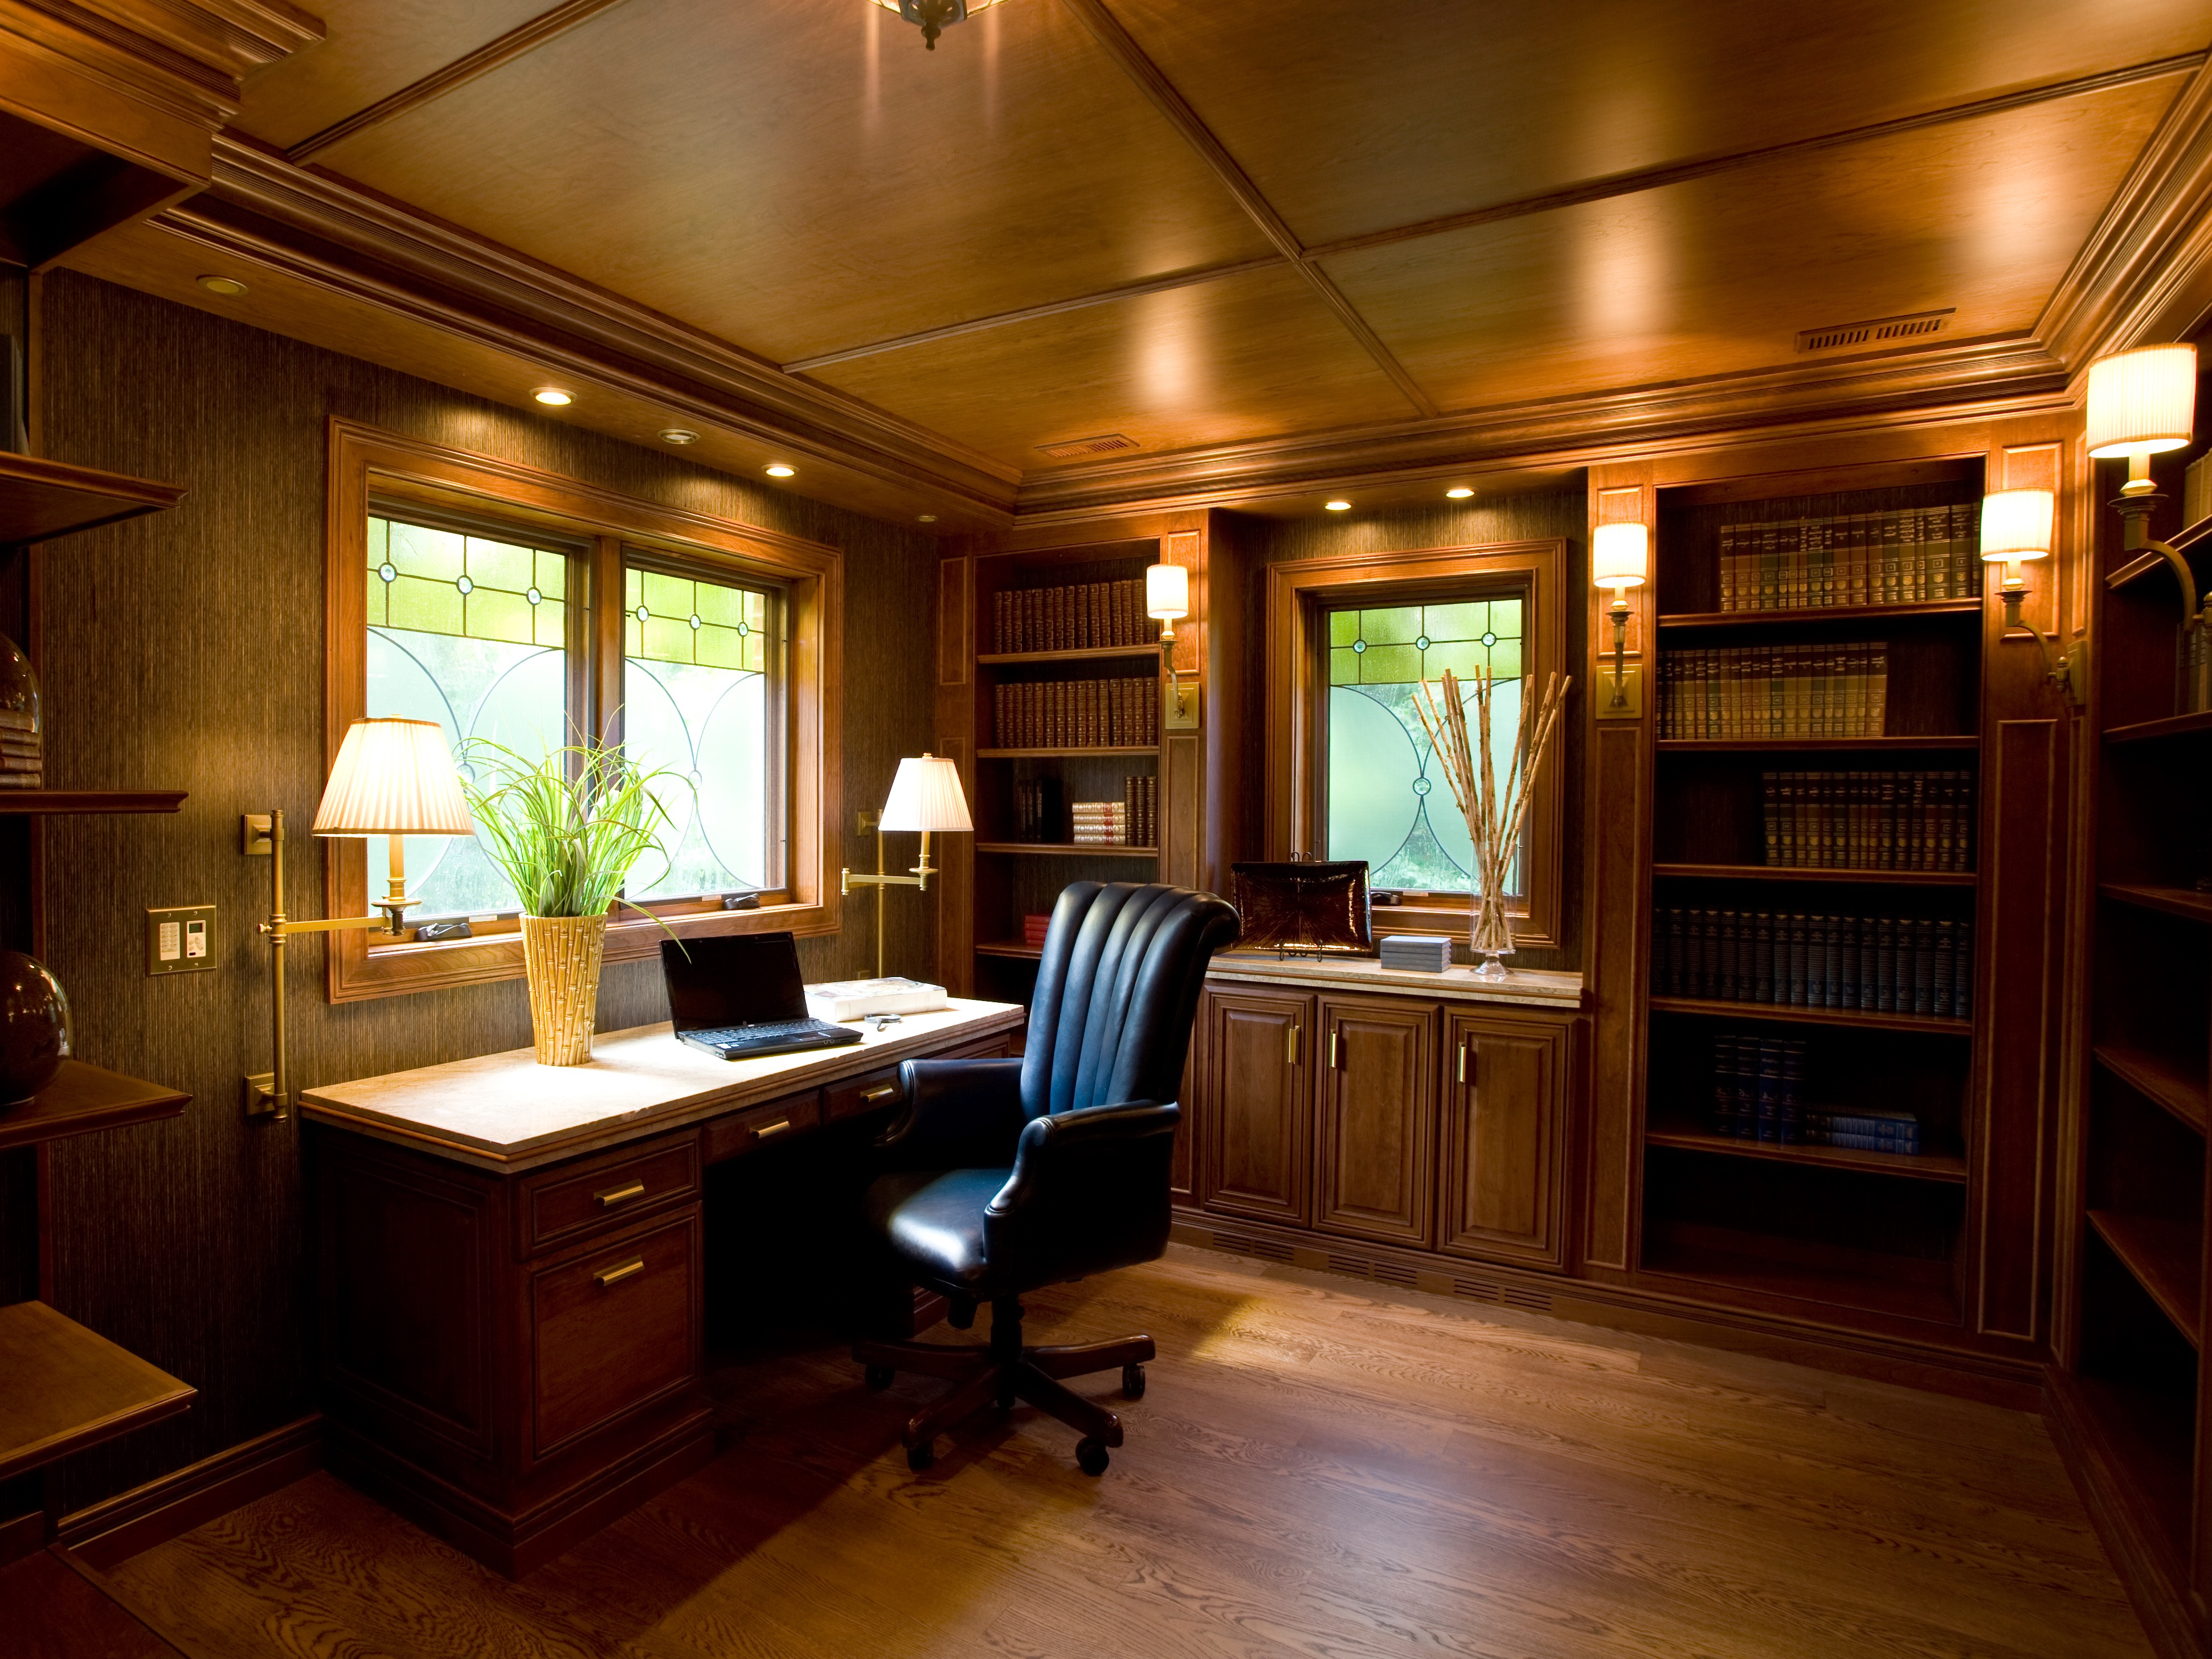 Craftsman Style Home Office With Wood Ceiling And Built Ins (Image 19 of 50)